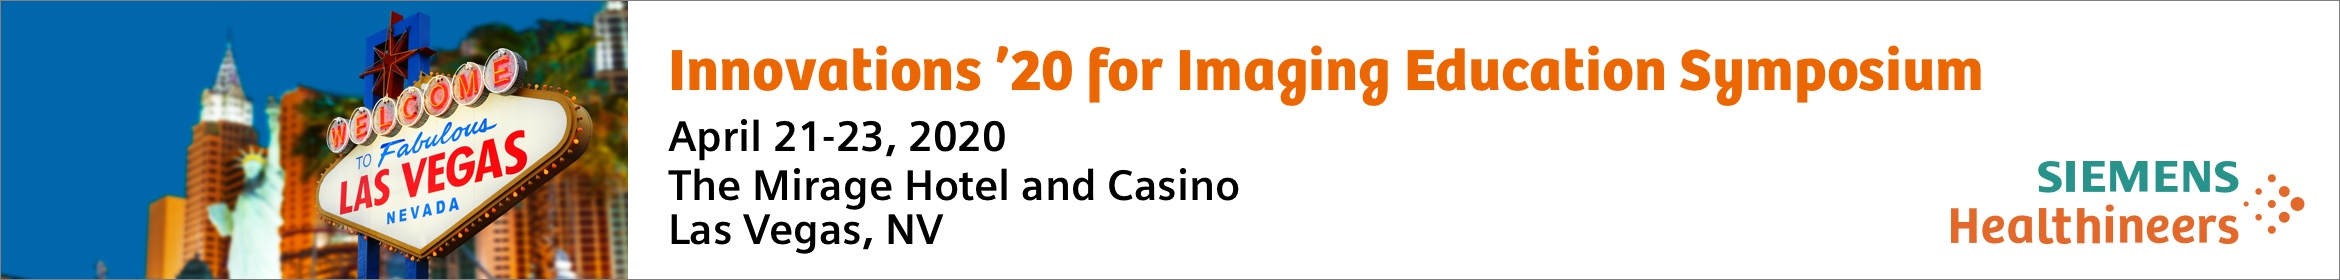 Innovations for Imaging 2020 - Professionals Main banner